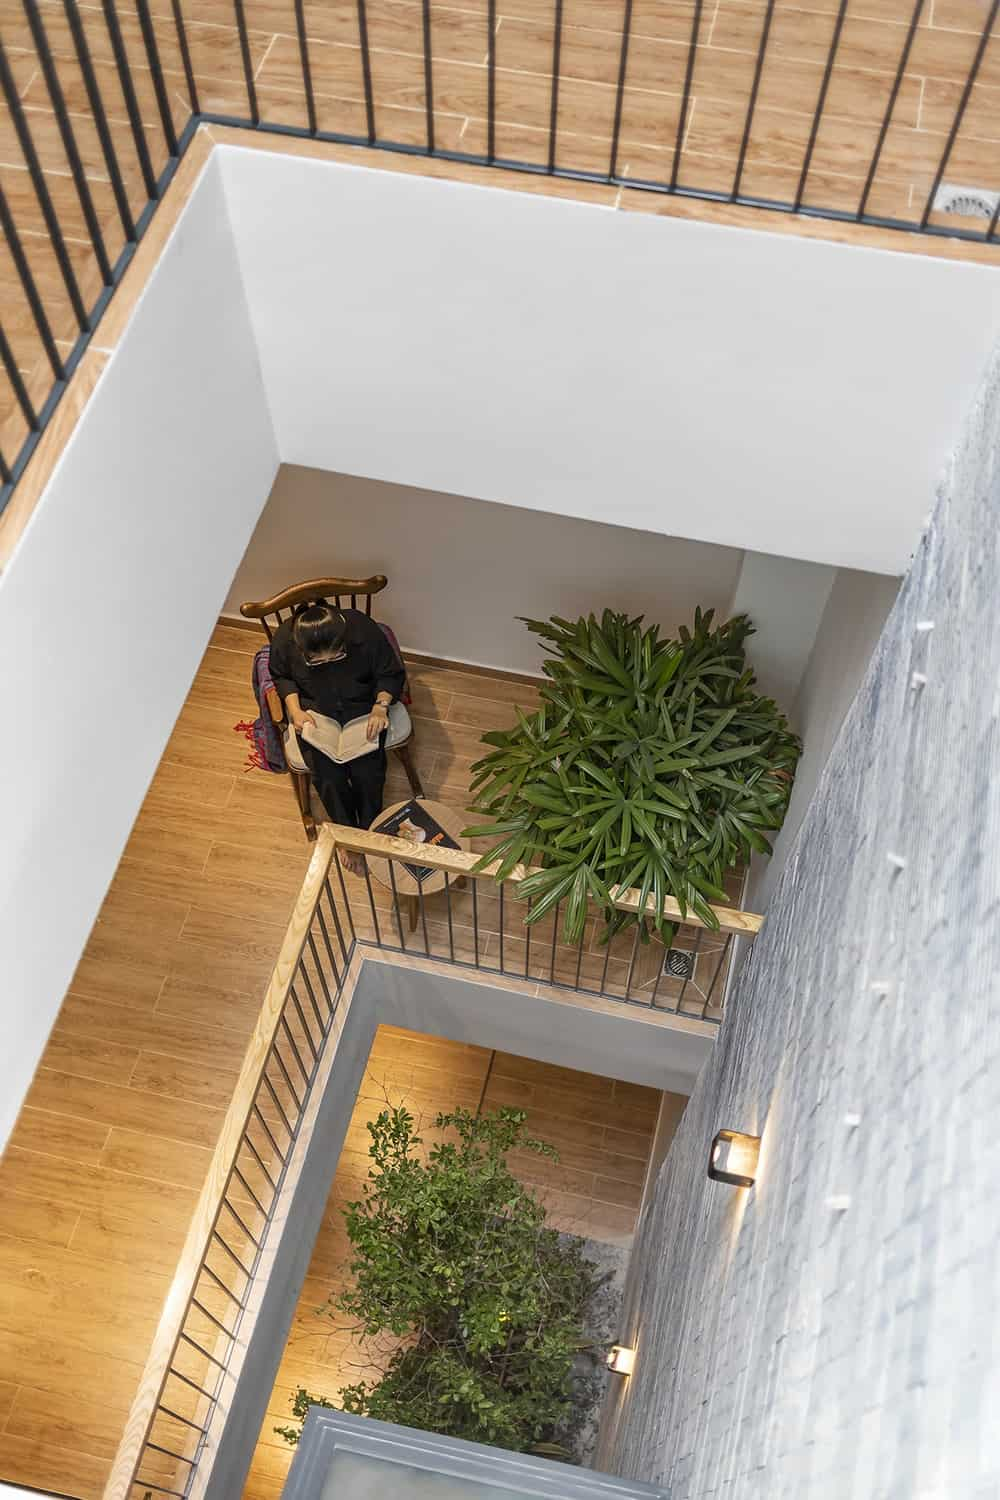 This is a look down the indoor balcony showcasing the potted plants that pair well with the hardwood flooring.